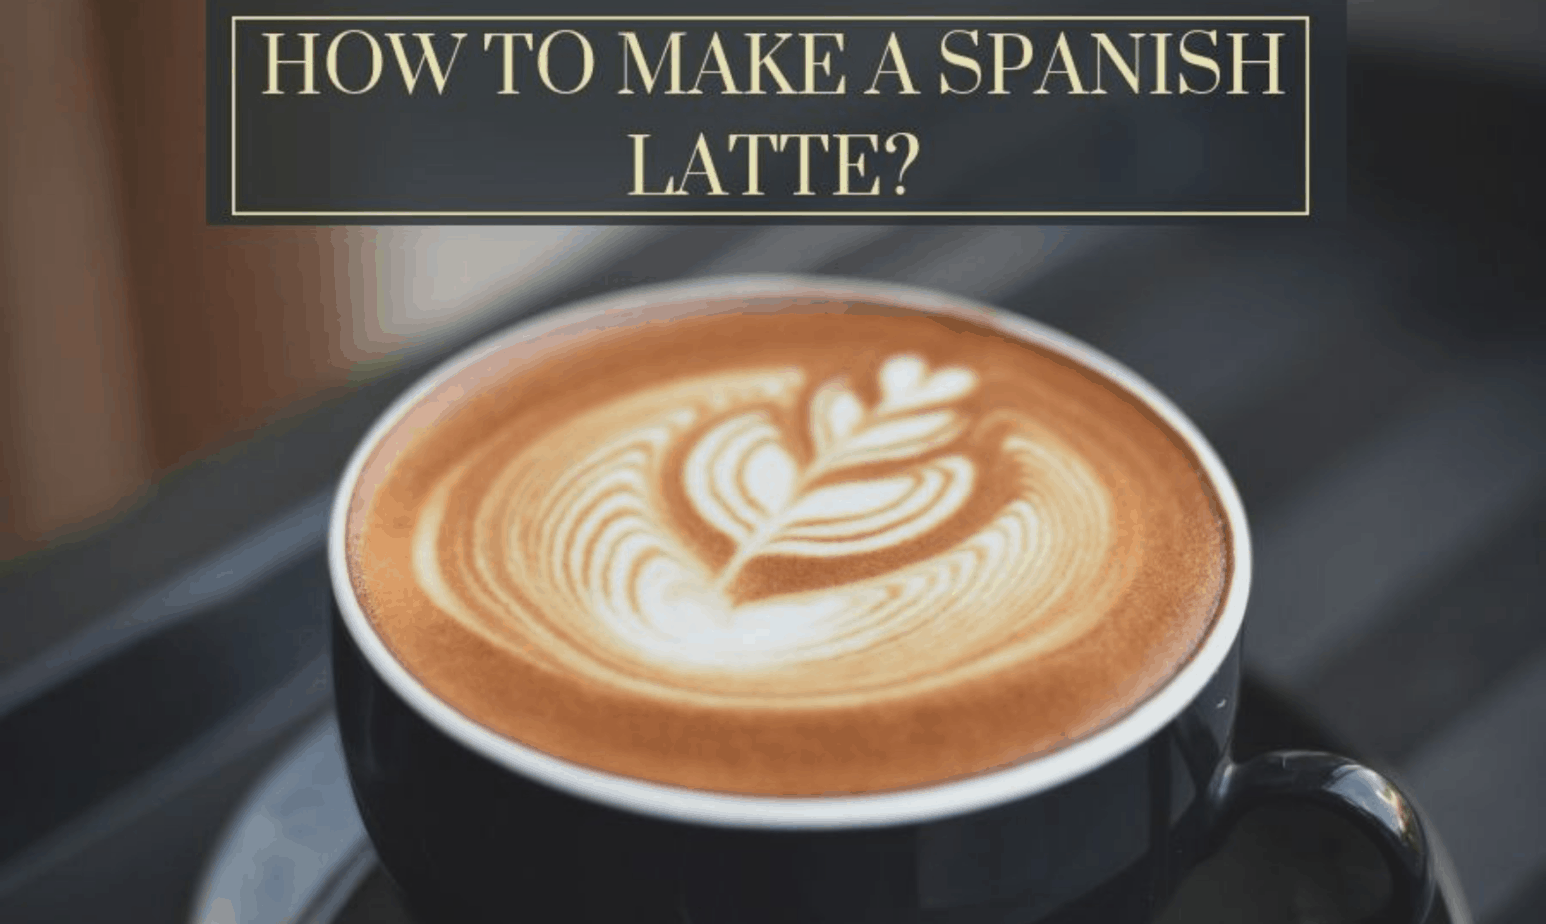 How to Make a Spanish Latte